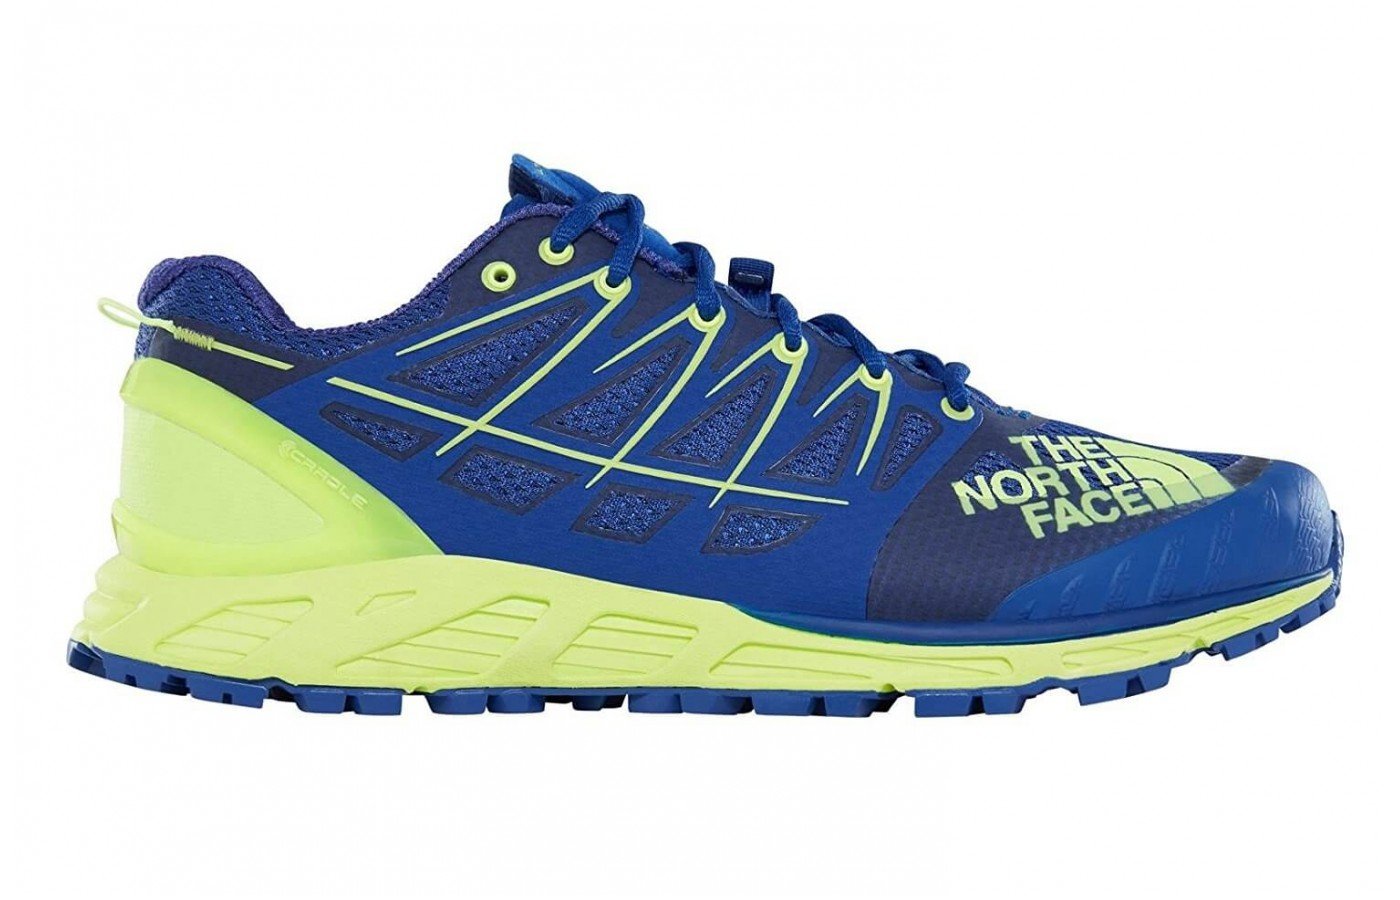 The The North Face Ultra Endurance II features a mesh upper